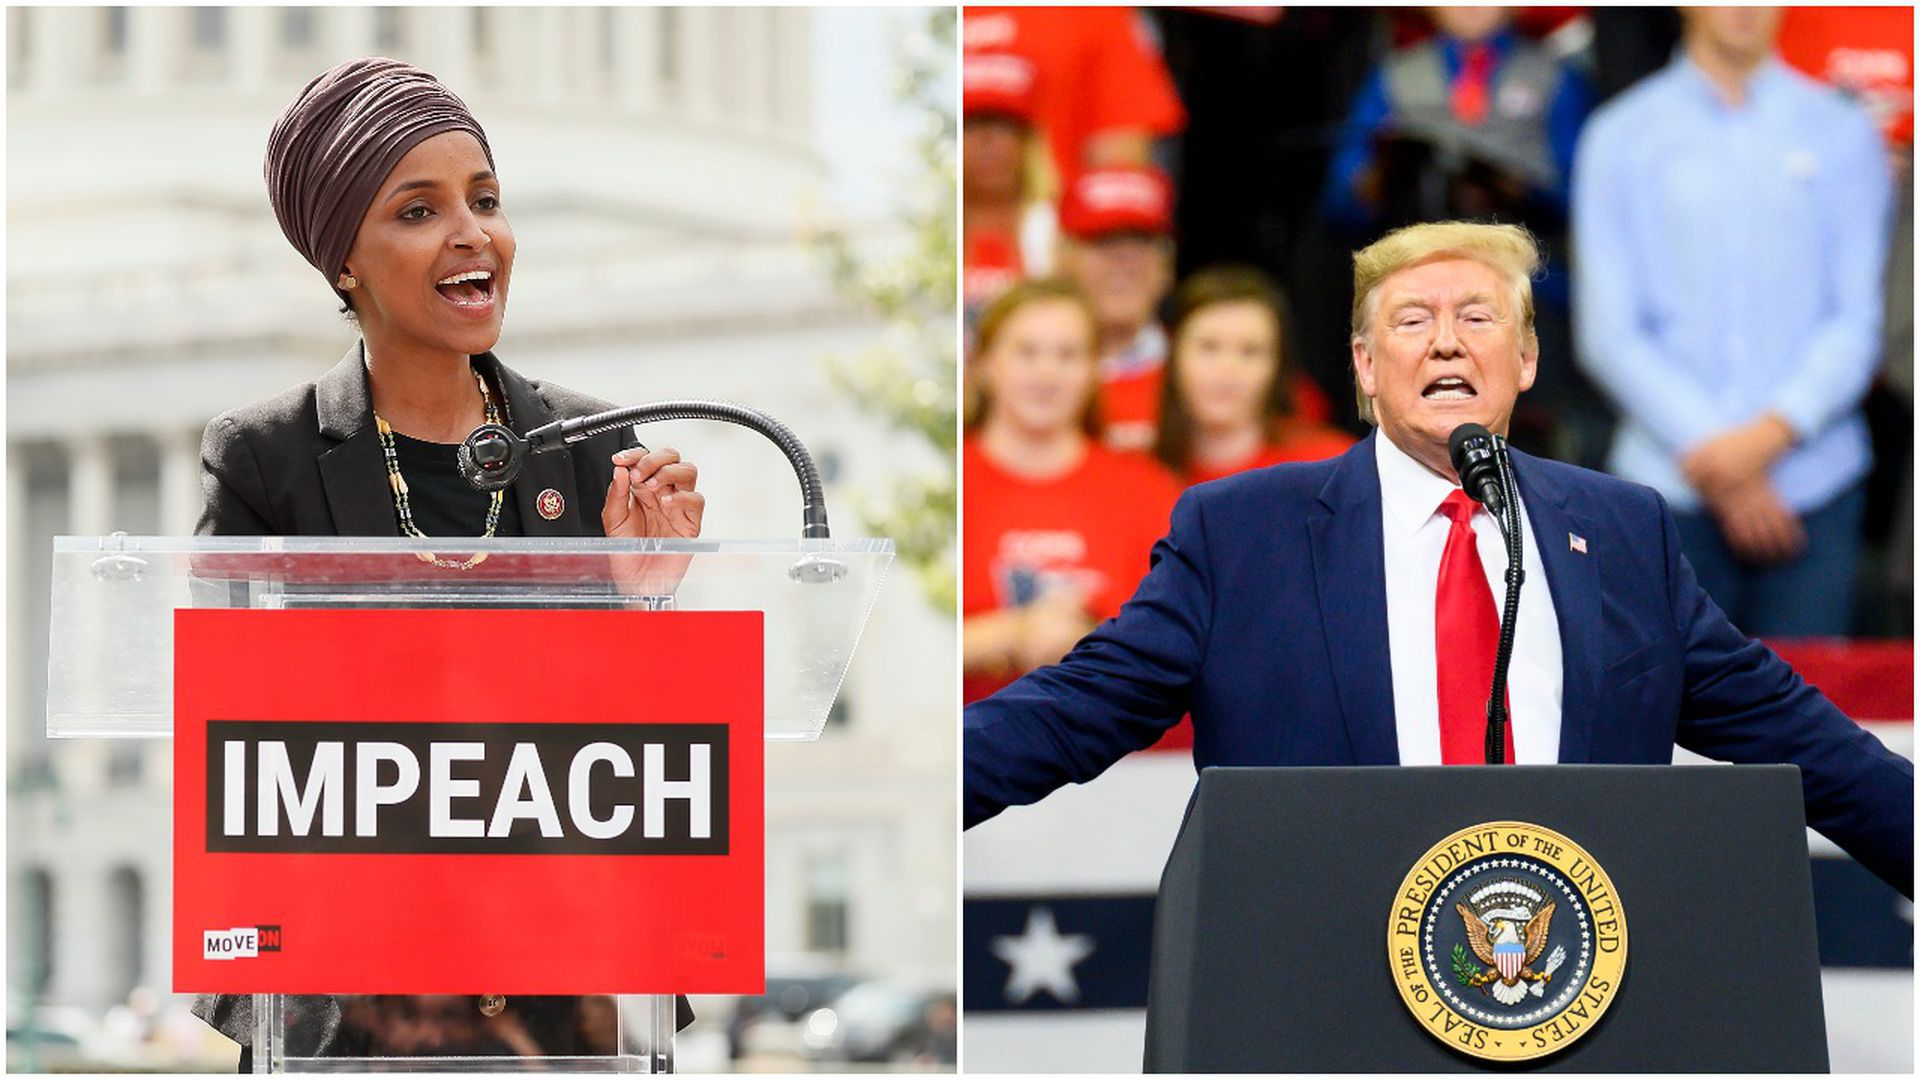 Rep. Ilhan Omar and President Trump